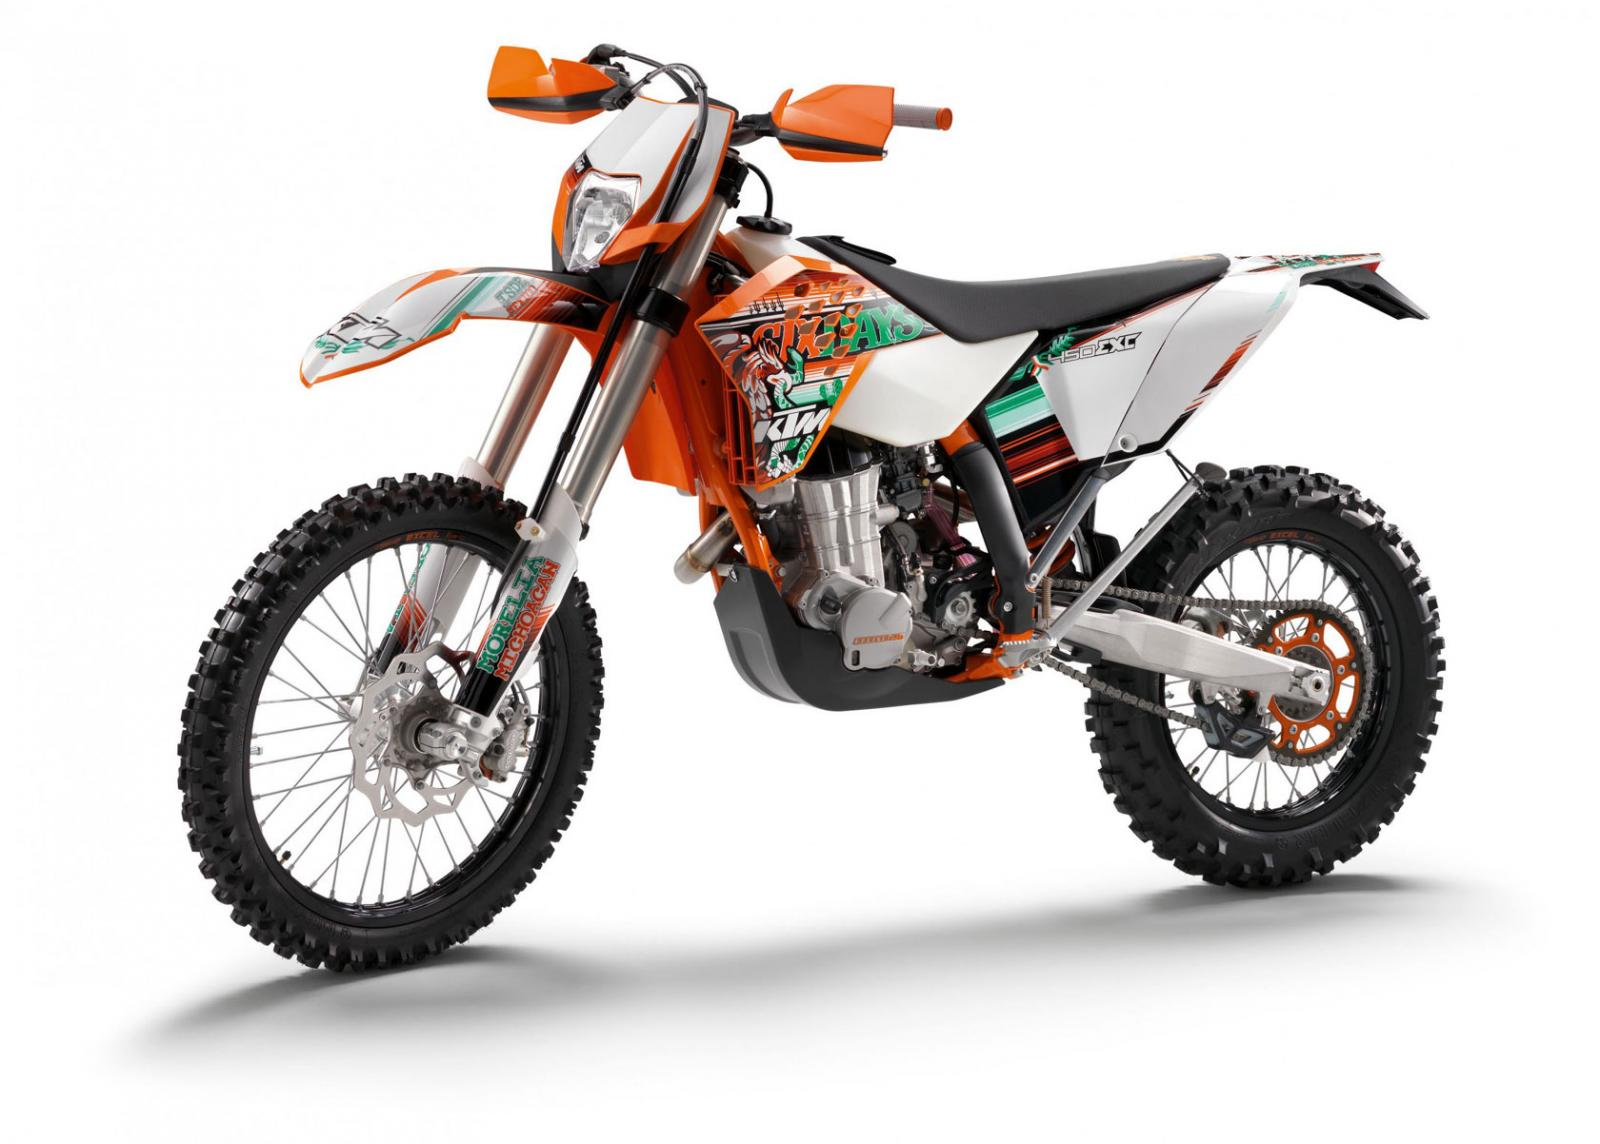 2007 ktm 450 exc racing moto zombdrive com. Black Bedroom Furniture Sets. Home Design Ideas